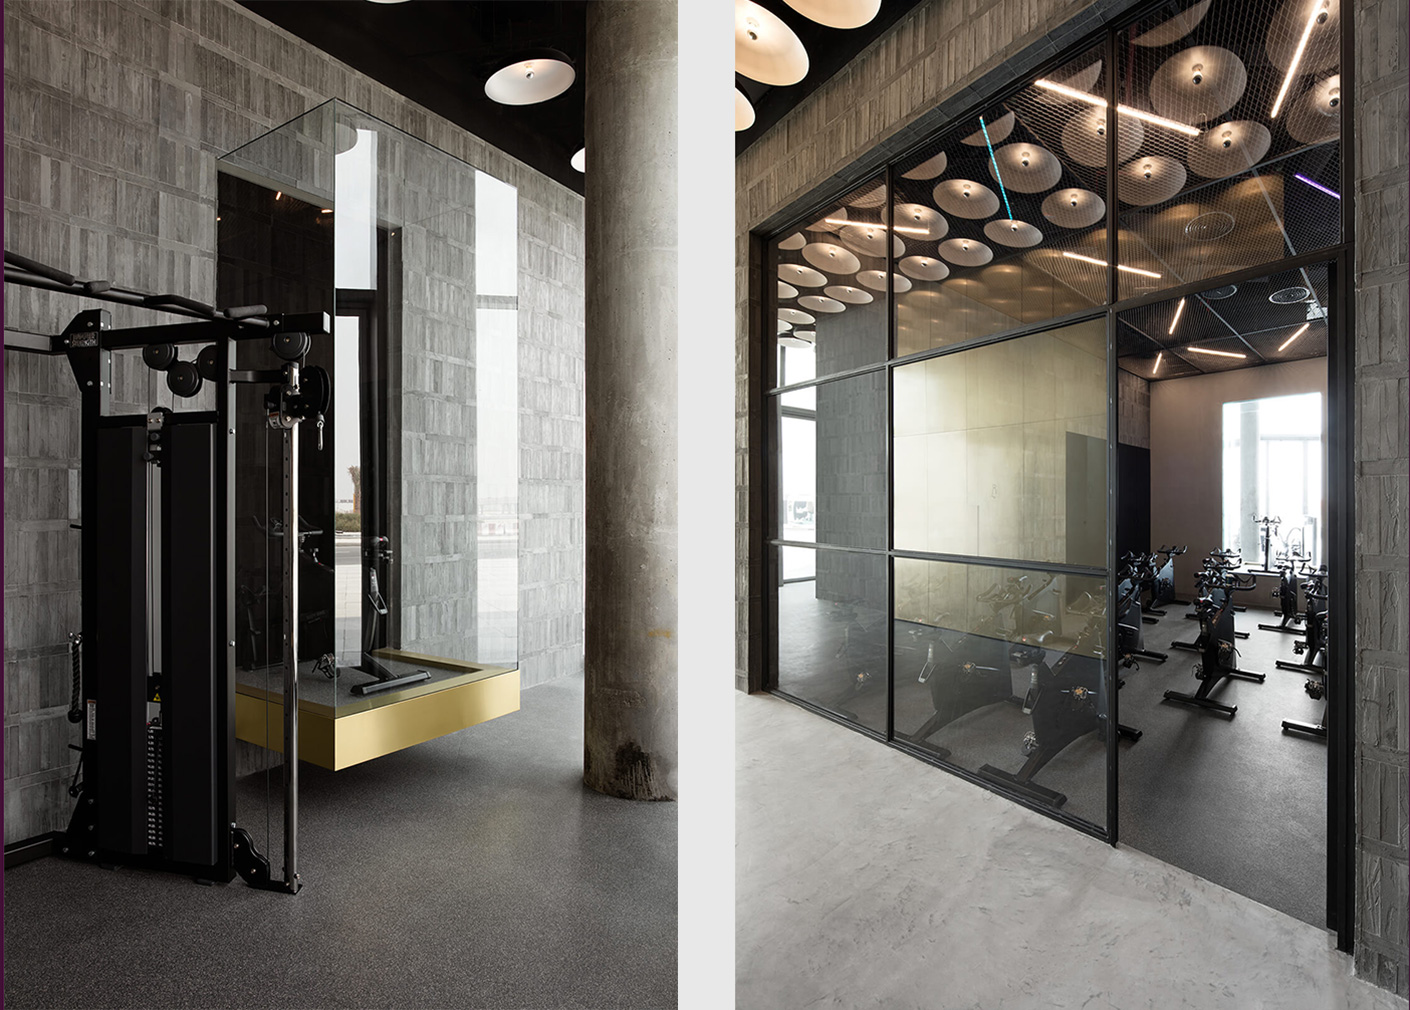 Gyms that raise the bar for design: Warehouse in Dubai